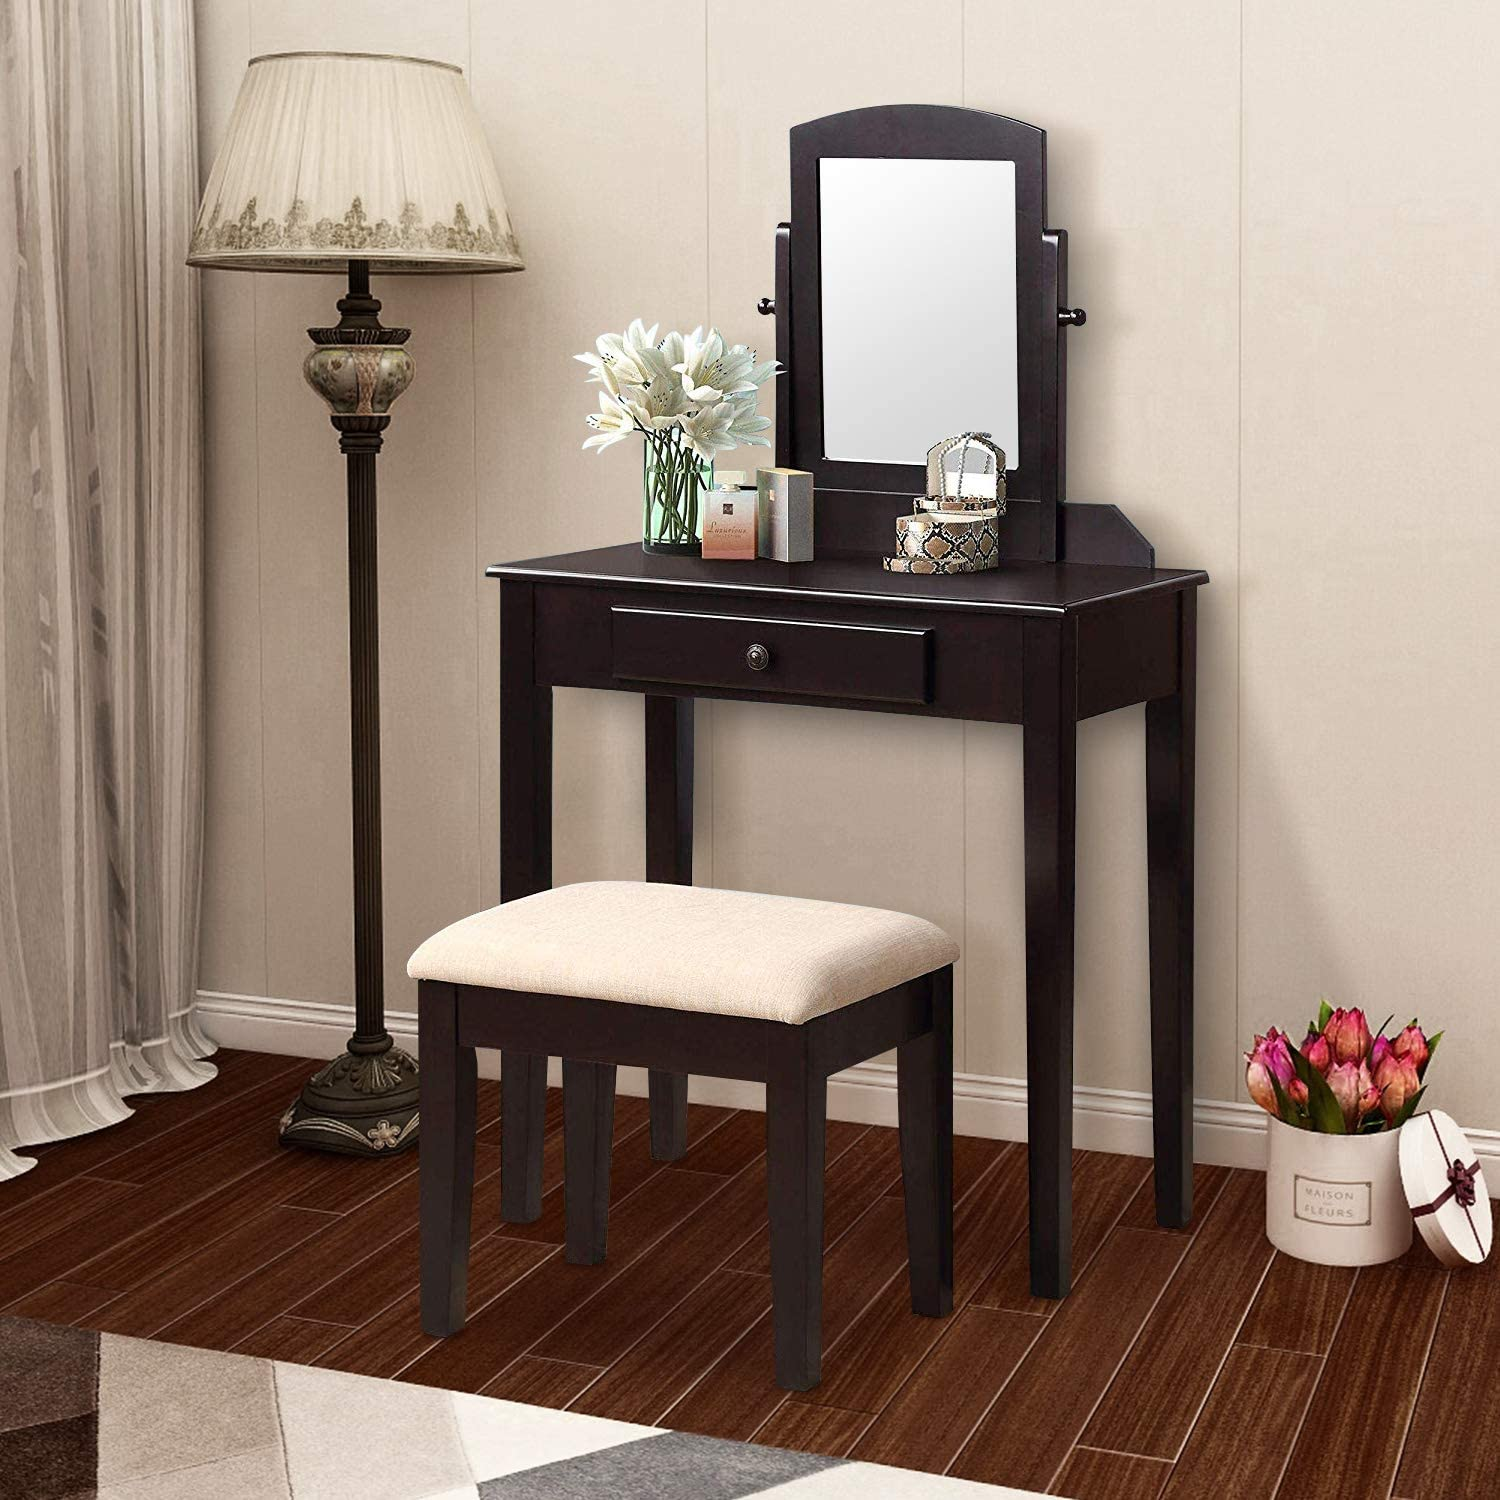 Harper Bright Designs Vanity Set with Mirror, Make-up Dressing Table with 1 Drawer and Cushioned Stool for Women Espresso